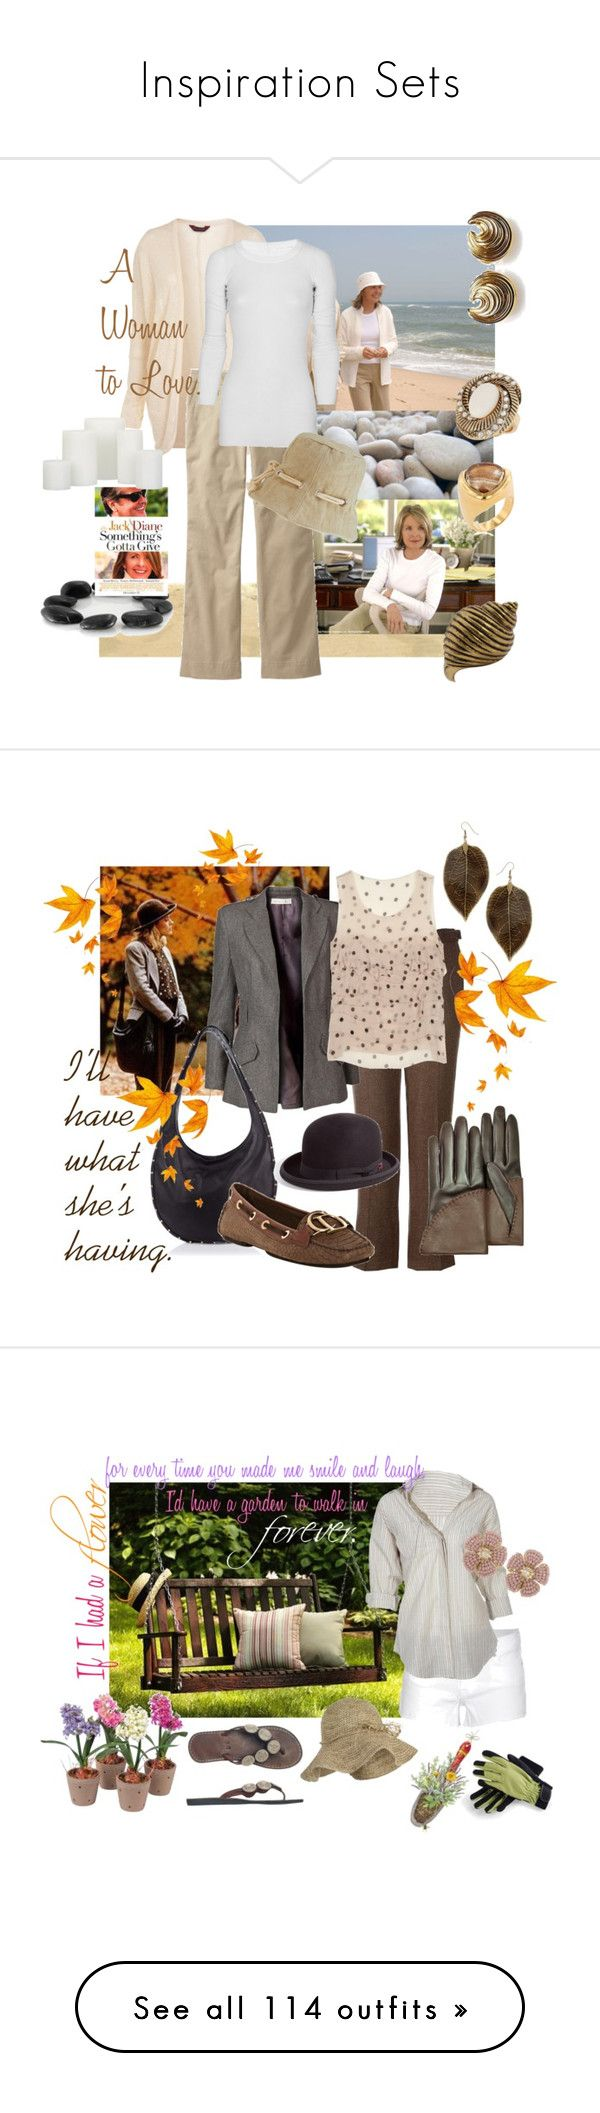 """""""Inspiration Sets"""" by sarah-dee-73 ❤ liked on Polyvore featuring Miss Selfridge, Old Navy, Rick Owens, Barneys New York, Fantasy Jewelry Box, Lucky Brand, Tiffany & Co., Dorothy Perkins, Crate and Barrel and Ralph Lauren"""